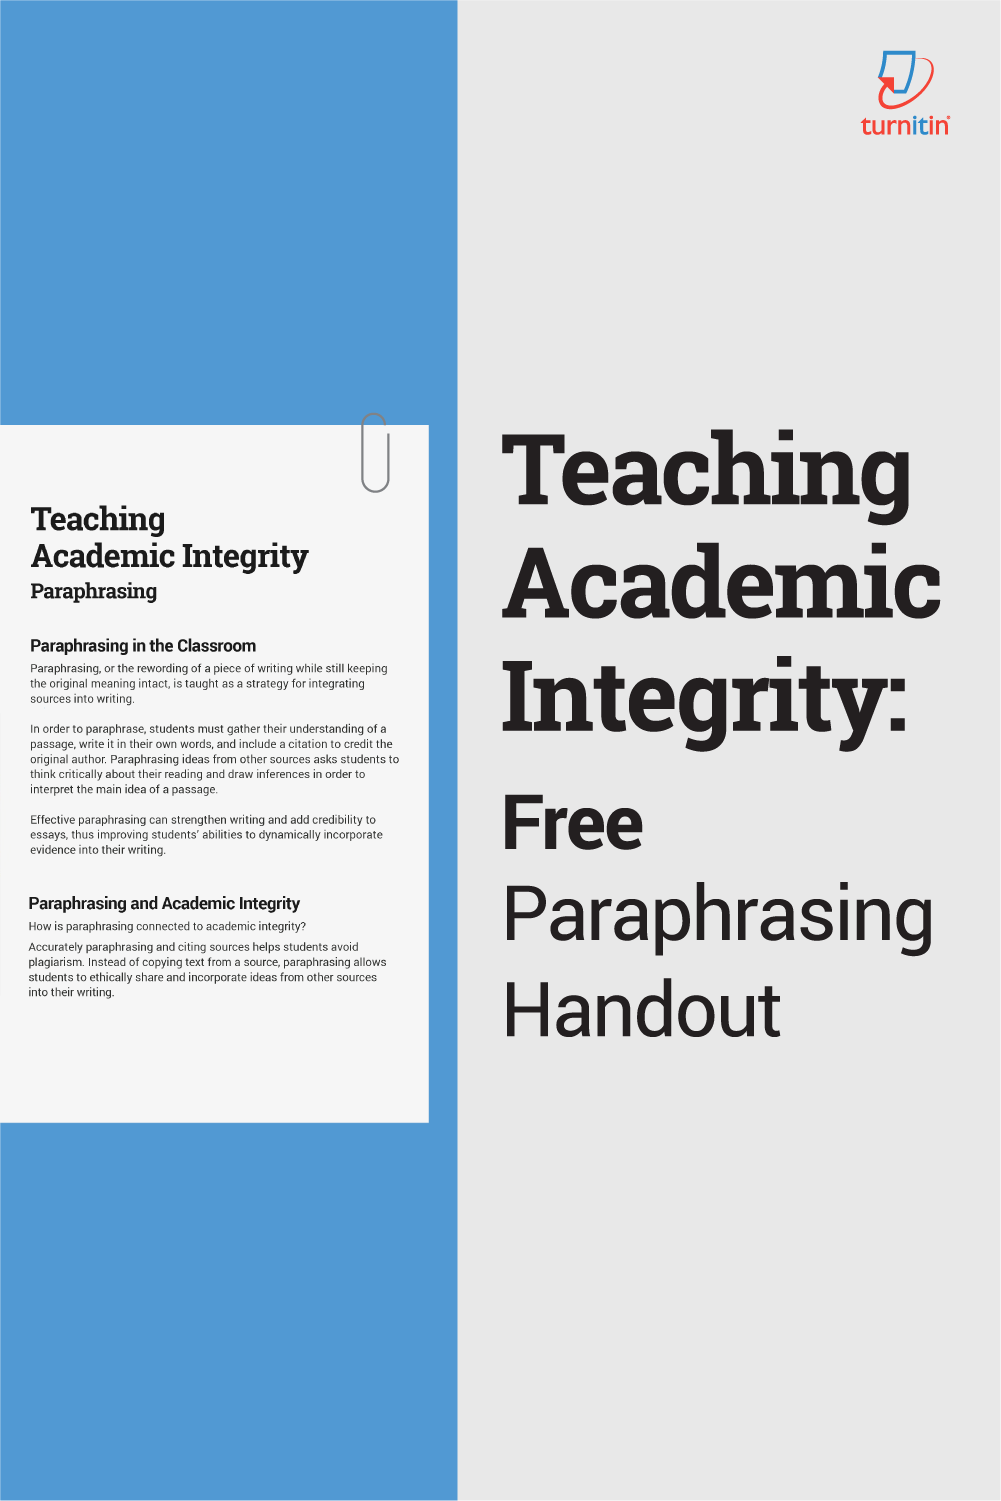 Paraphrasing Handout One Pager Free Teaching Citing Sources Paraphrase